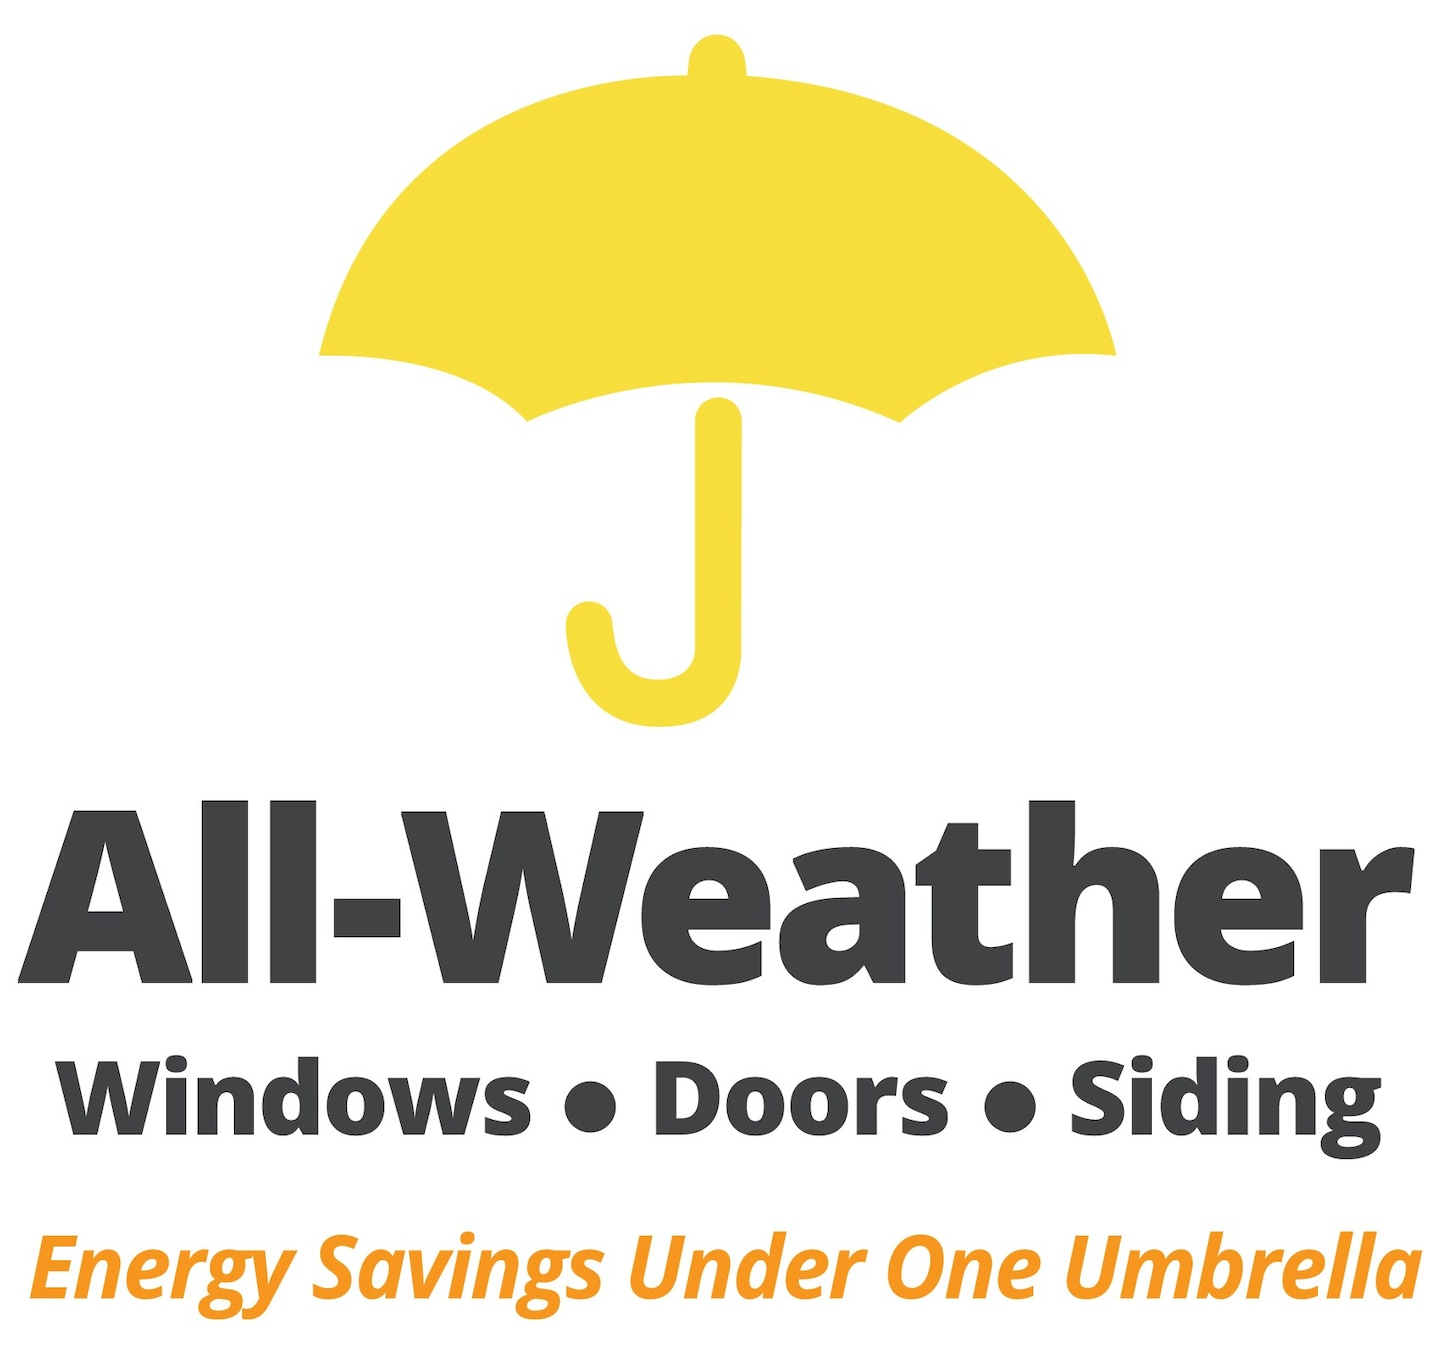 All-Weather Window Doors & Siding